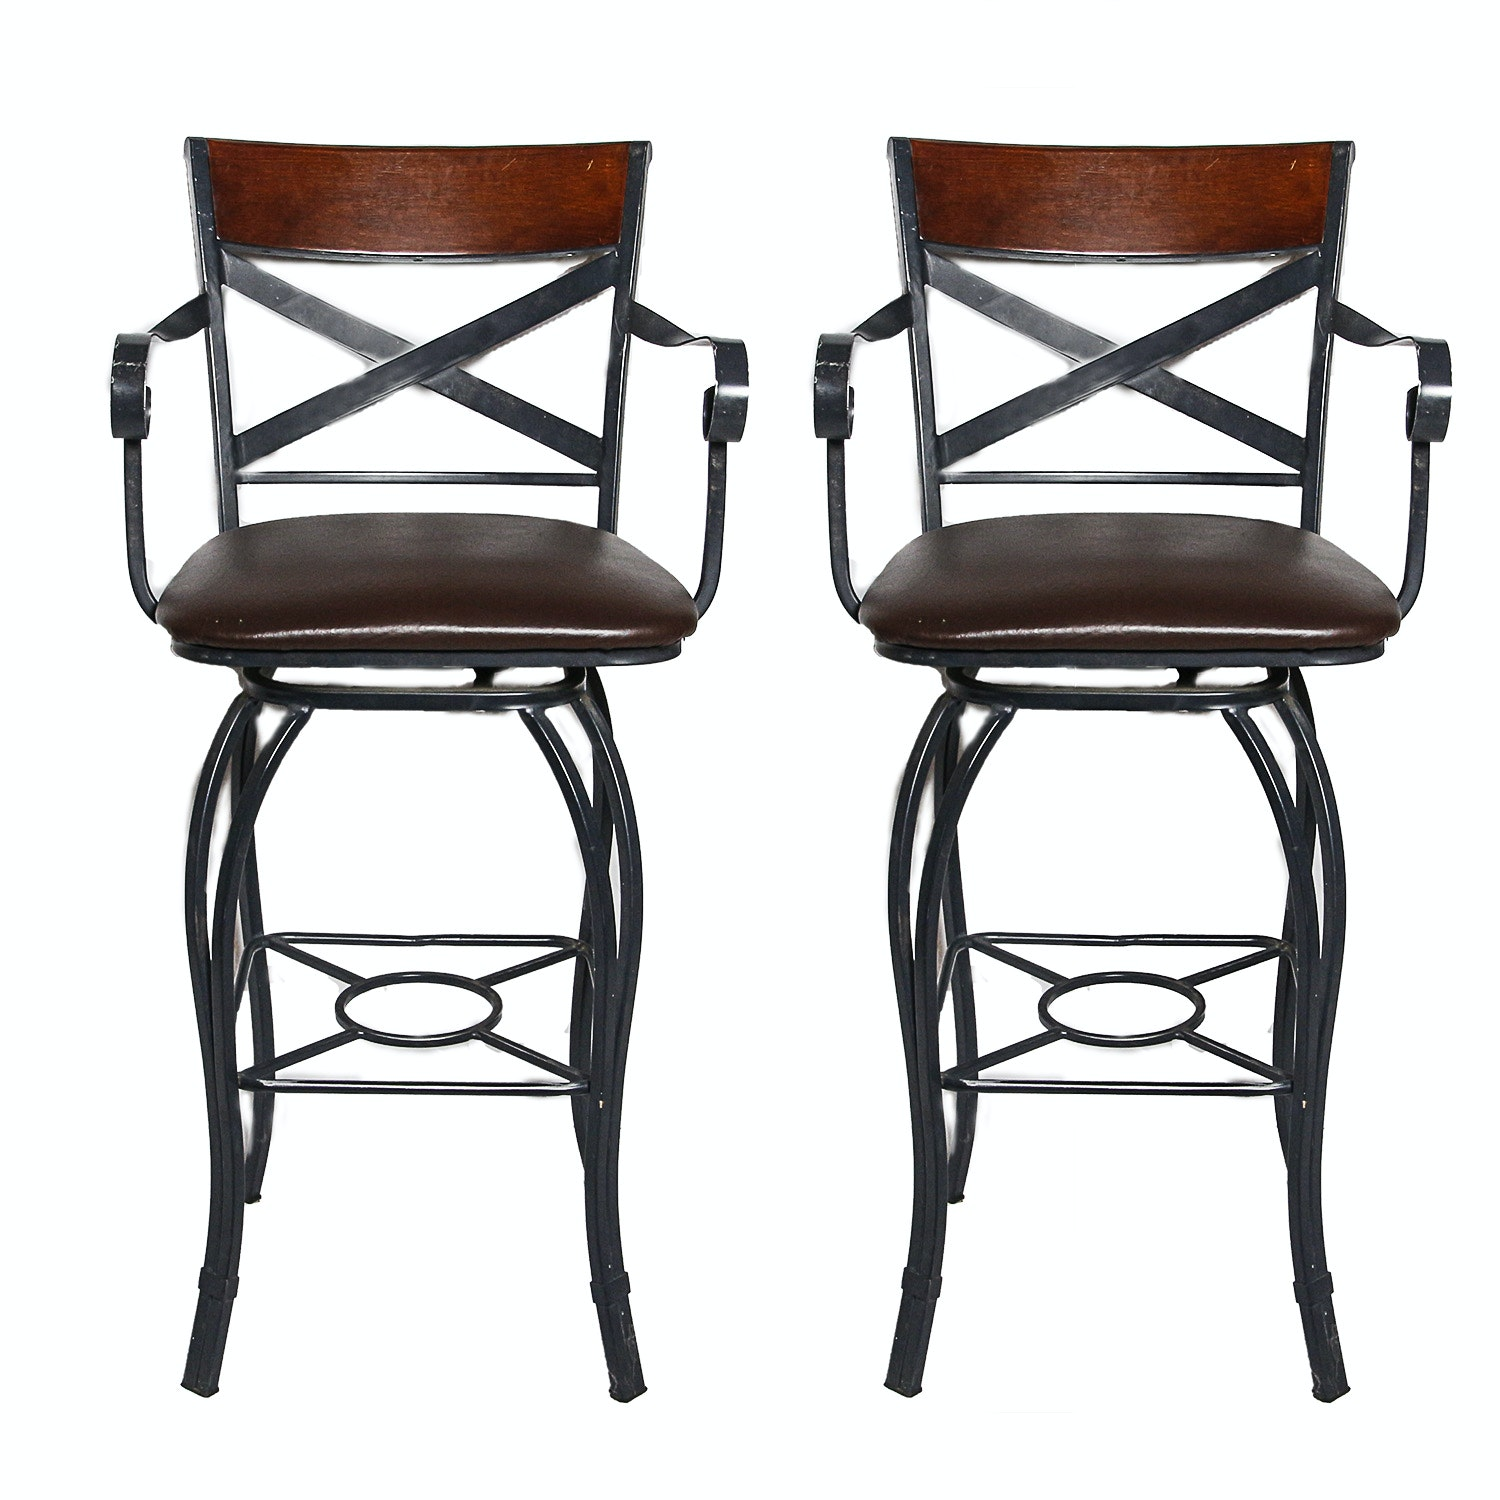 Pair of Wrought Iron Style Barstools with Leather Upholstery